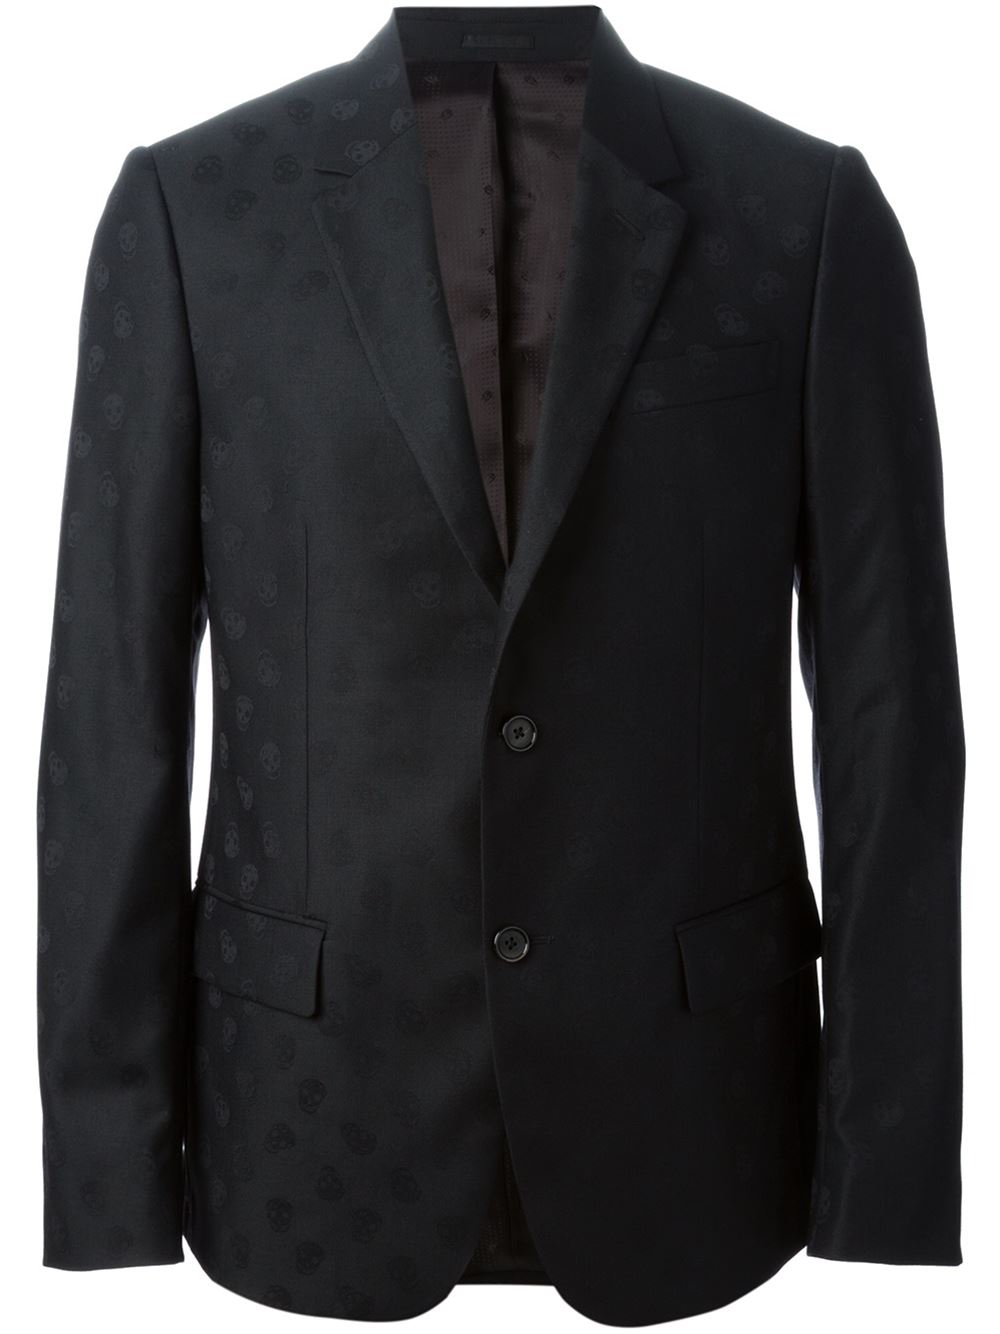 alexander black single men Results 1 - 21 of 21  jacket:single breasted with two/ three (2/ 3) button front, ( all  alexander  mcqueen men's black three button light blazer sport coat.